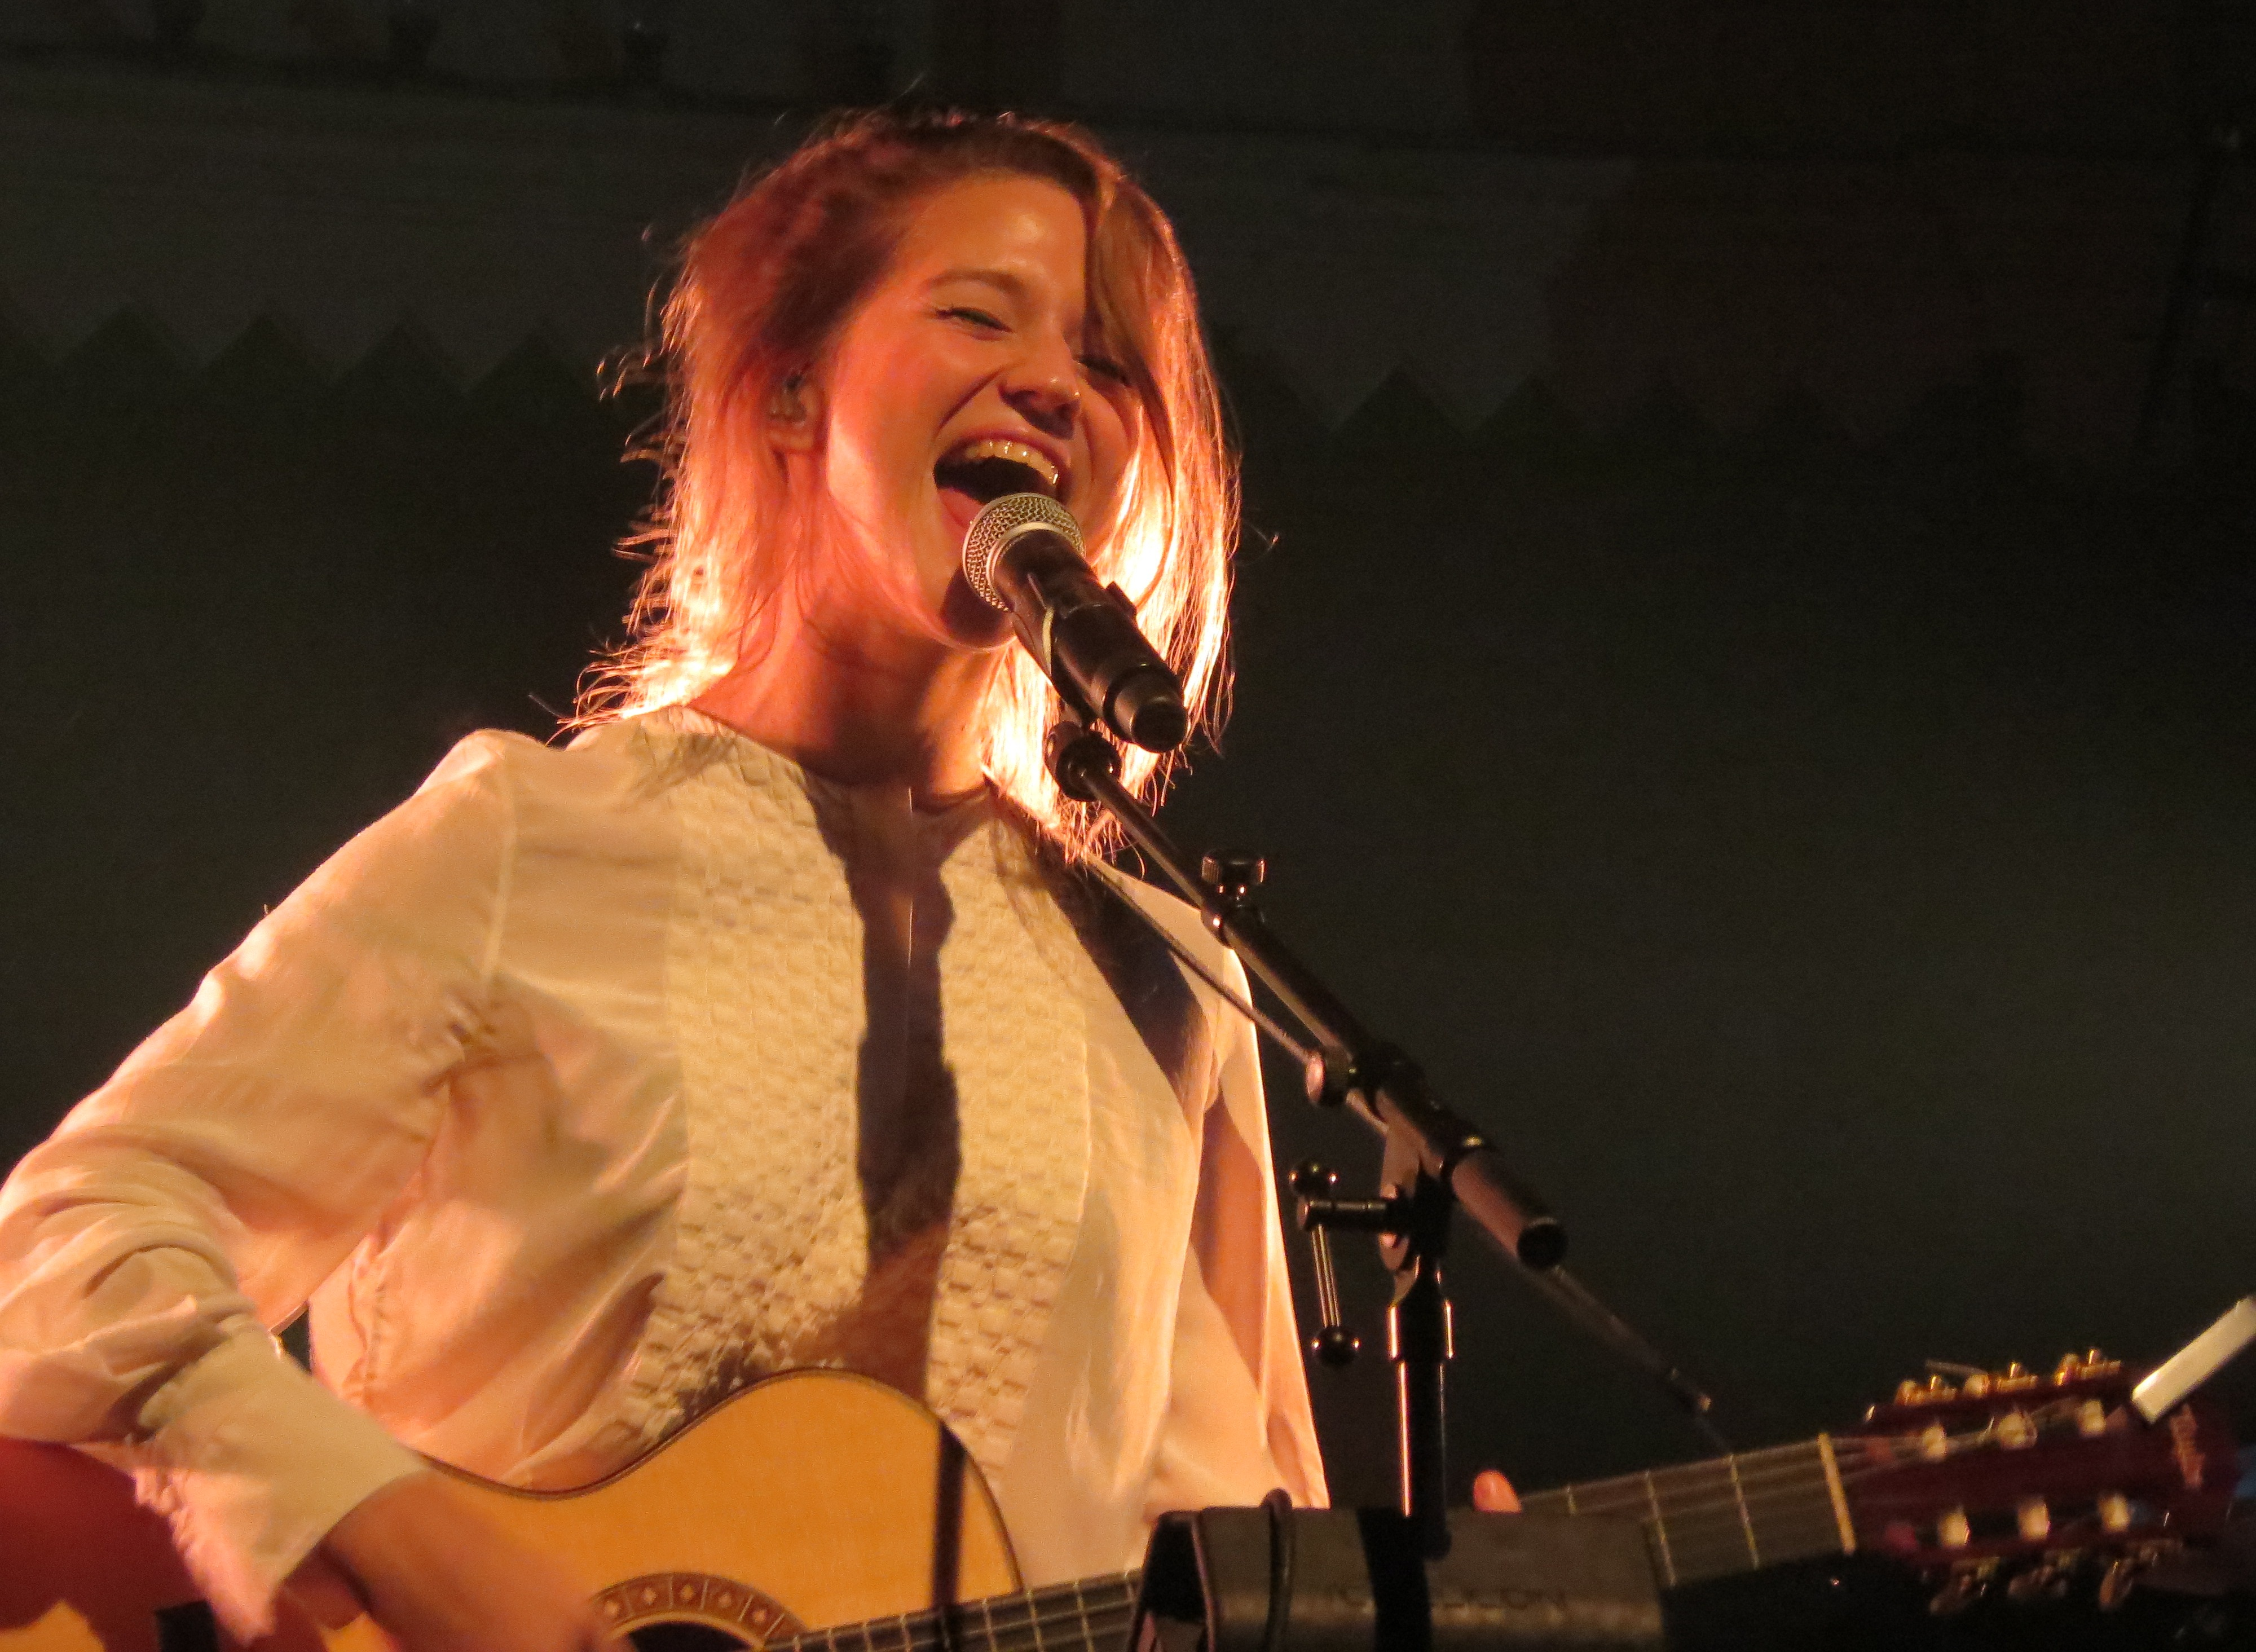 Gig Review: Selah Sue at Paradiso | A Bit Of Pop Music